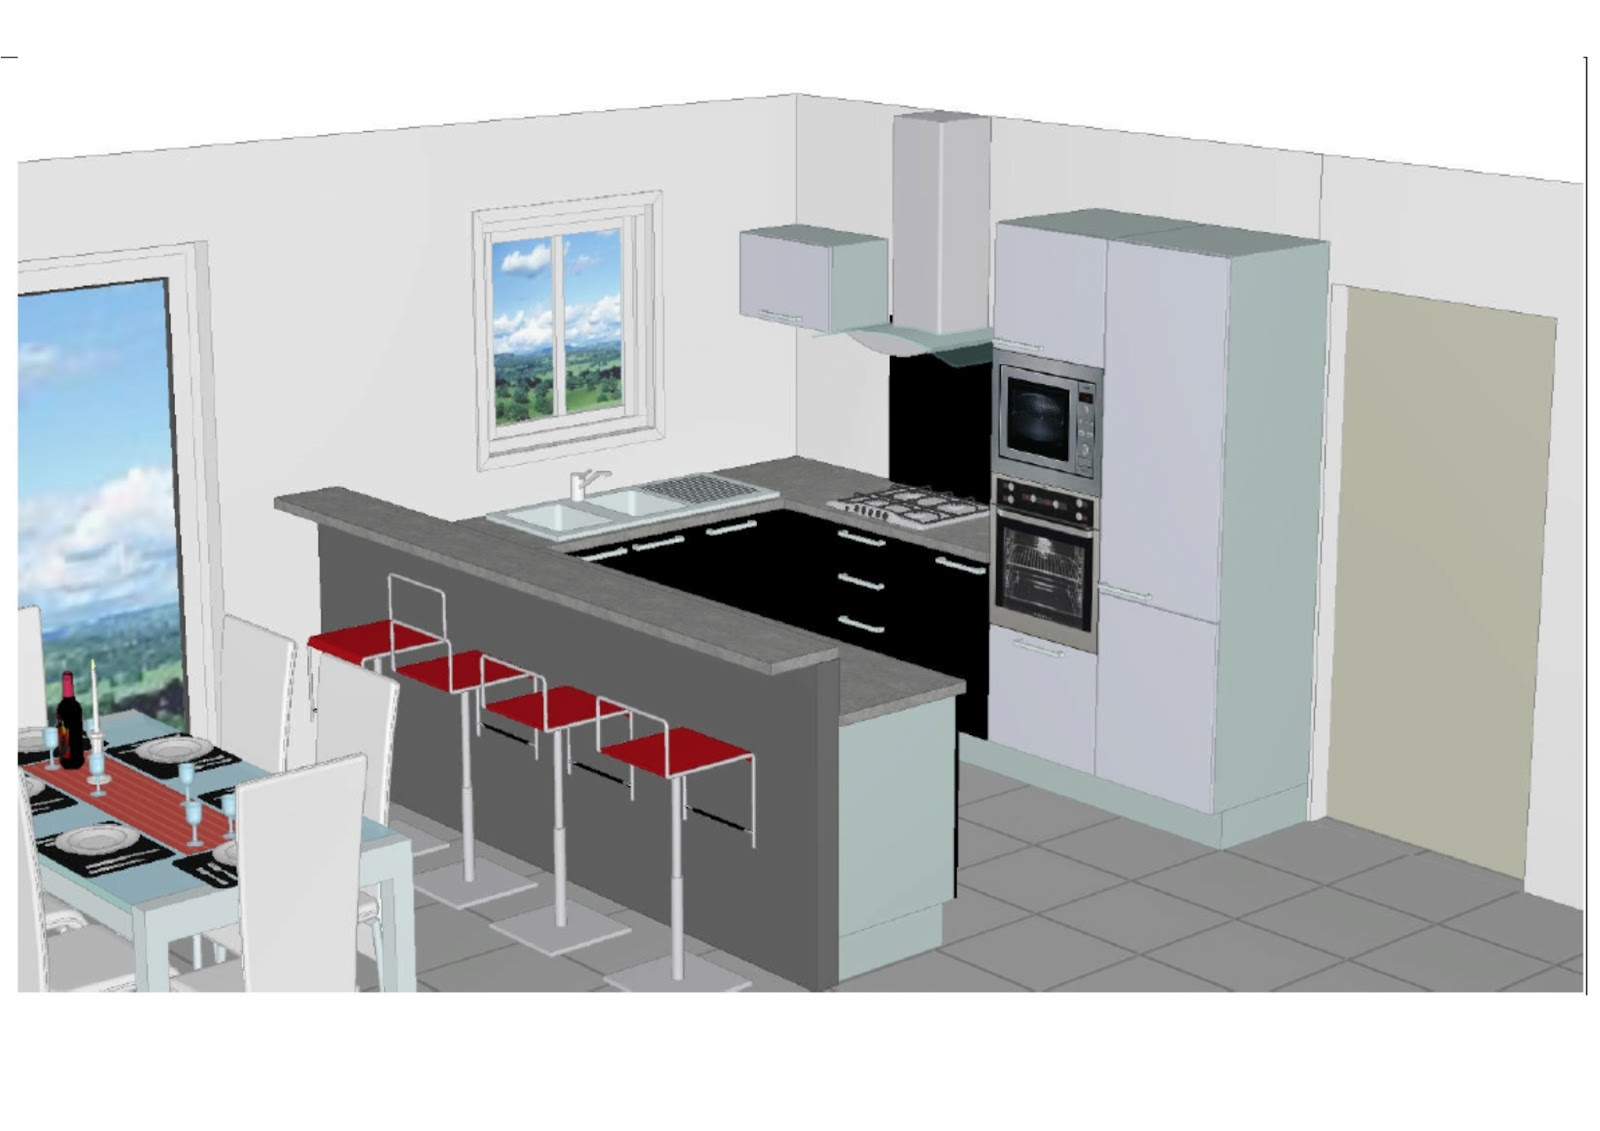 Maison sponsoris e 41 label rt 2012 oucques 41290 for Cuisine plan 3d